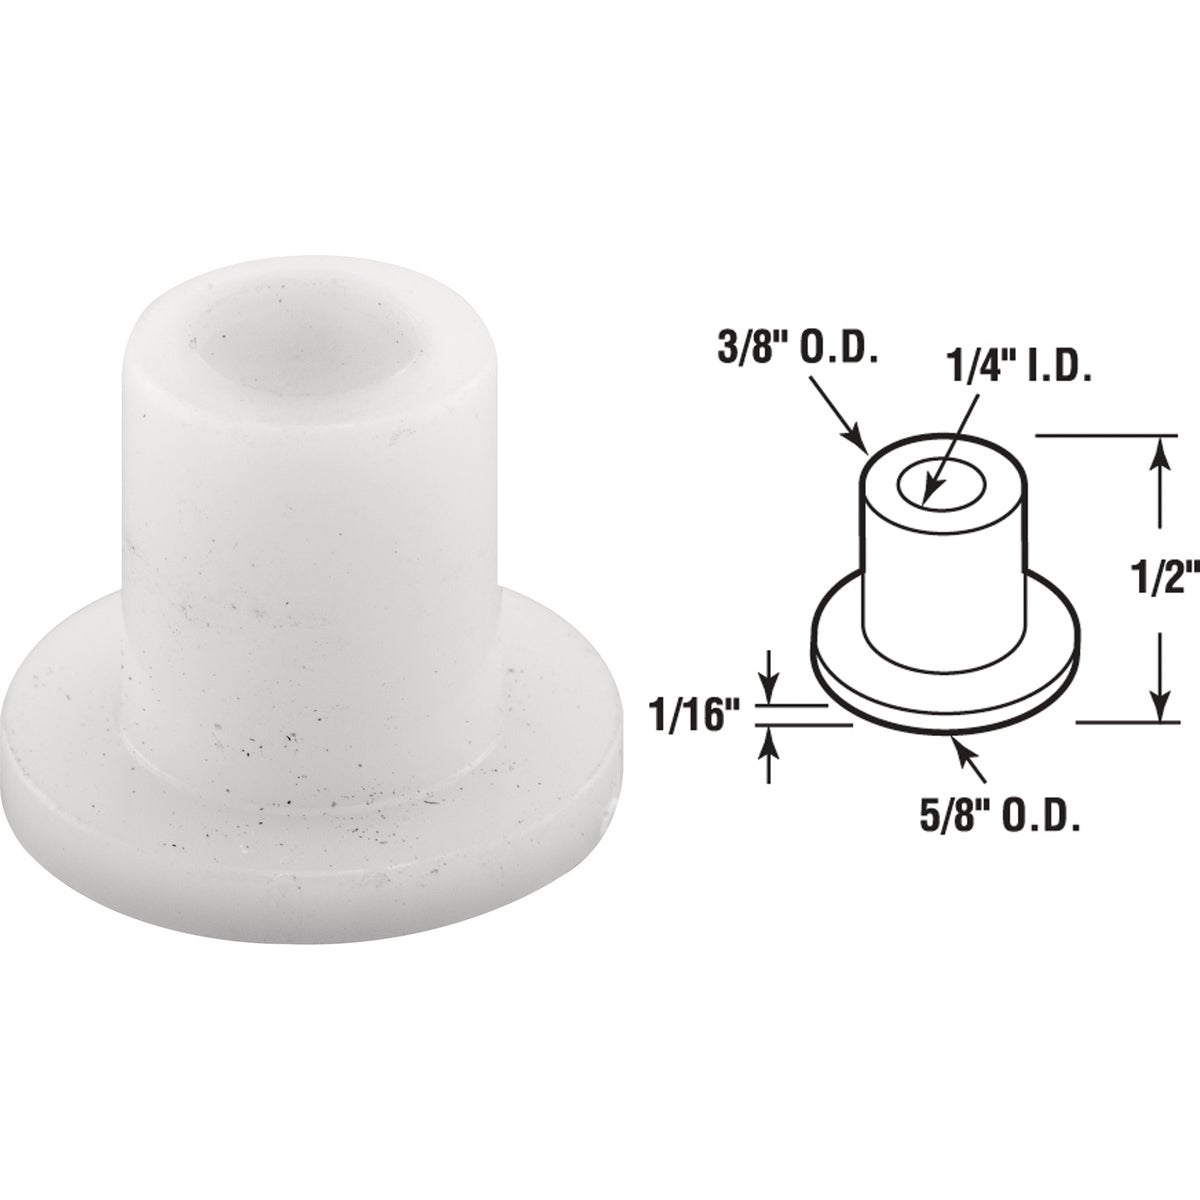 BI-FOLD CAP GUIDE - 16860 by Prime Line Products